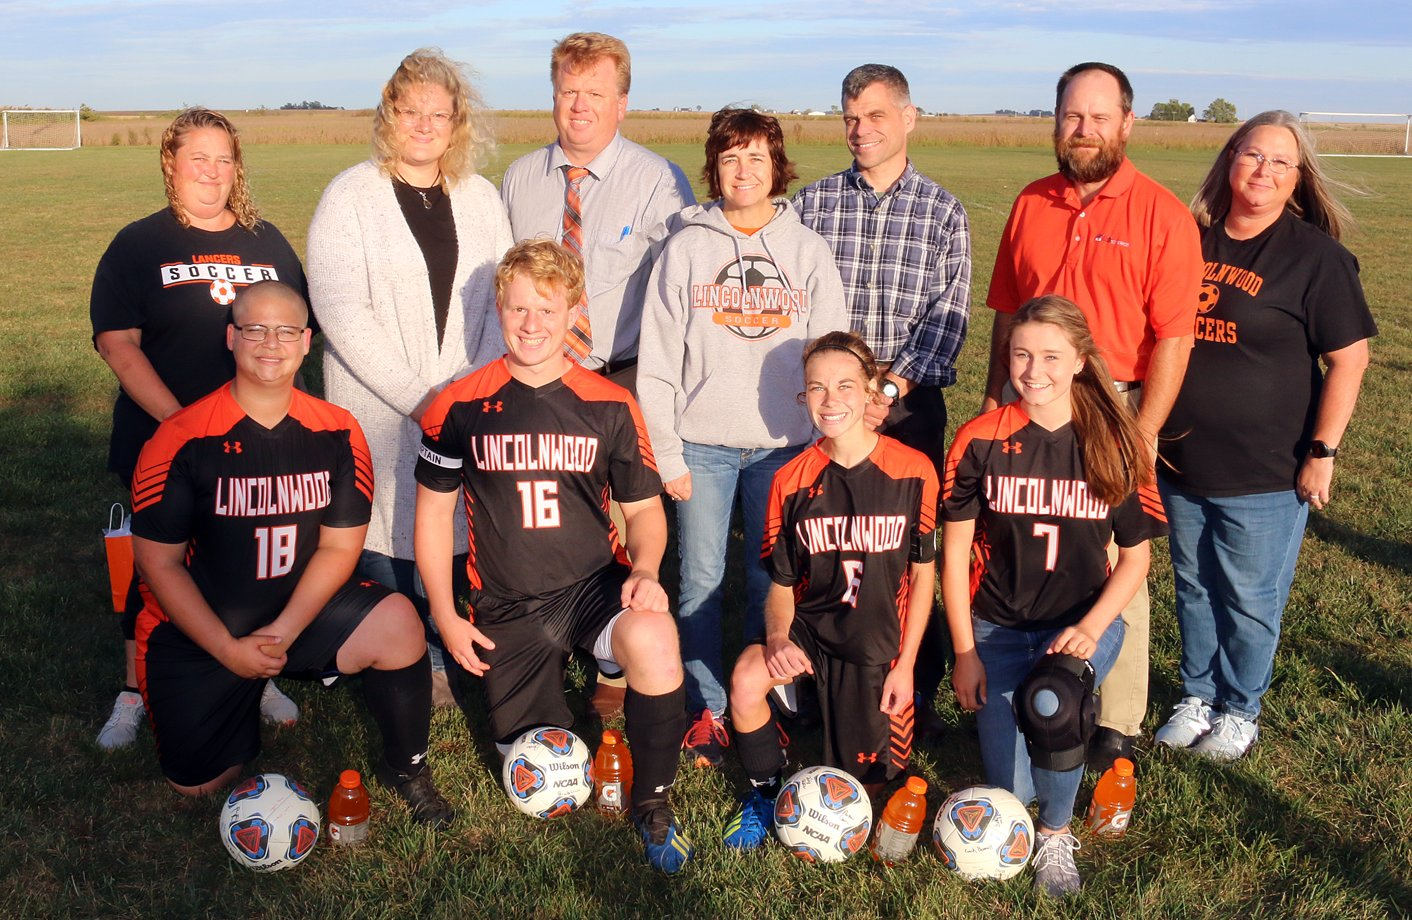 The Lincolnwood High School soccer team, who co-ops with Morrisonville, Nokomis and Pawnee, held its senior night festivities on Thursday, Oct. 3, before their 2-0 win over Greenville at Terry Todt Field in Raymond. From the left are Richard Tego, with mother Veronica Morris; Evan Hopper, with parents Aaron and Kim Hopper; Natalia Cina, with parents Rick and Lynn Cina; and Cassie Bradbury, with parents Lance and Amy Bradbury.